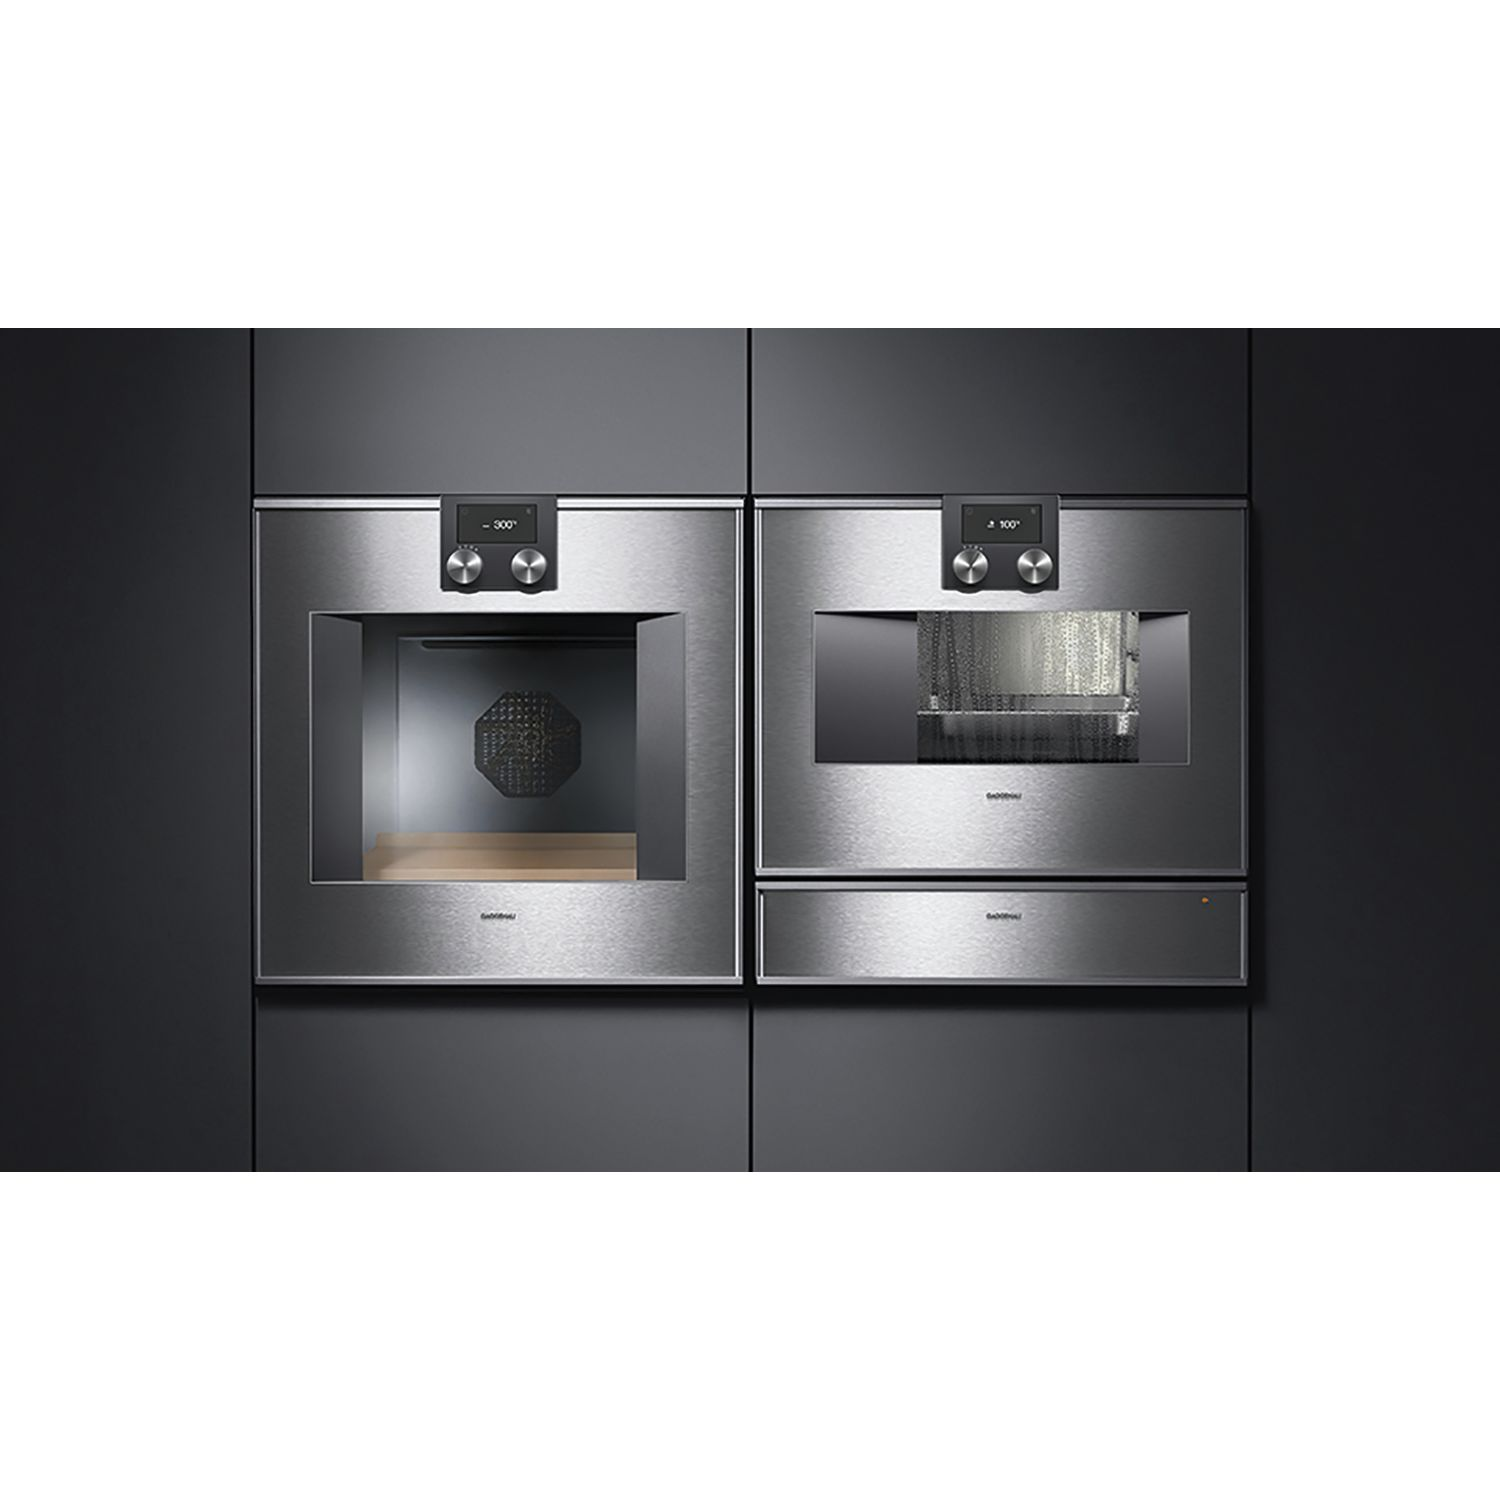 gaggenau backofen bo470111 edelstahl bedienung oben. Black Bedroom Furniture Sets. Home Design Ideas